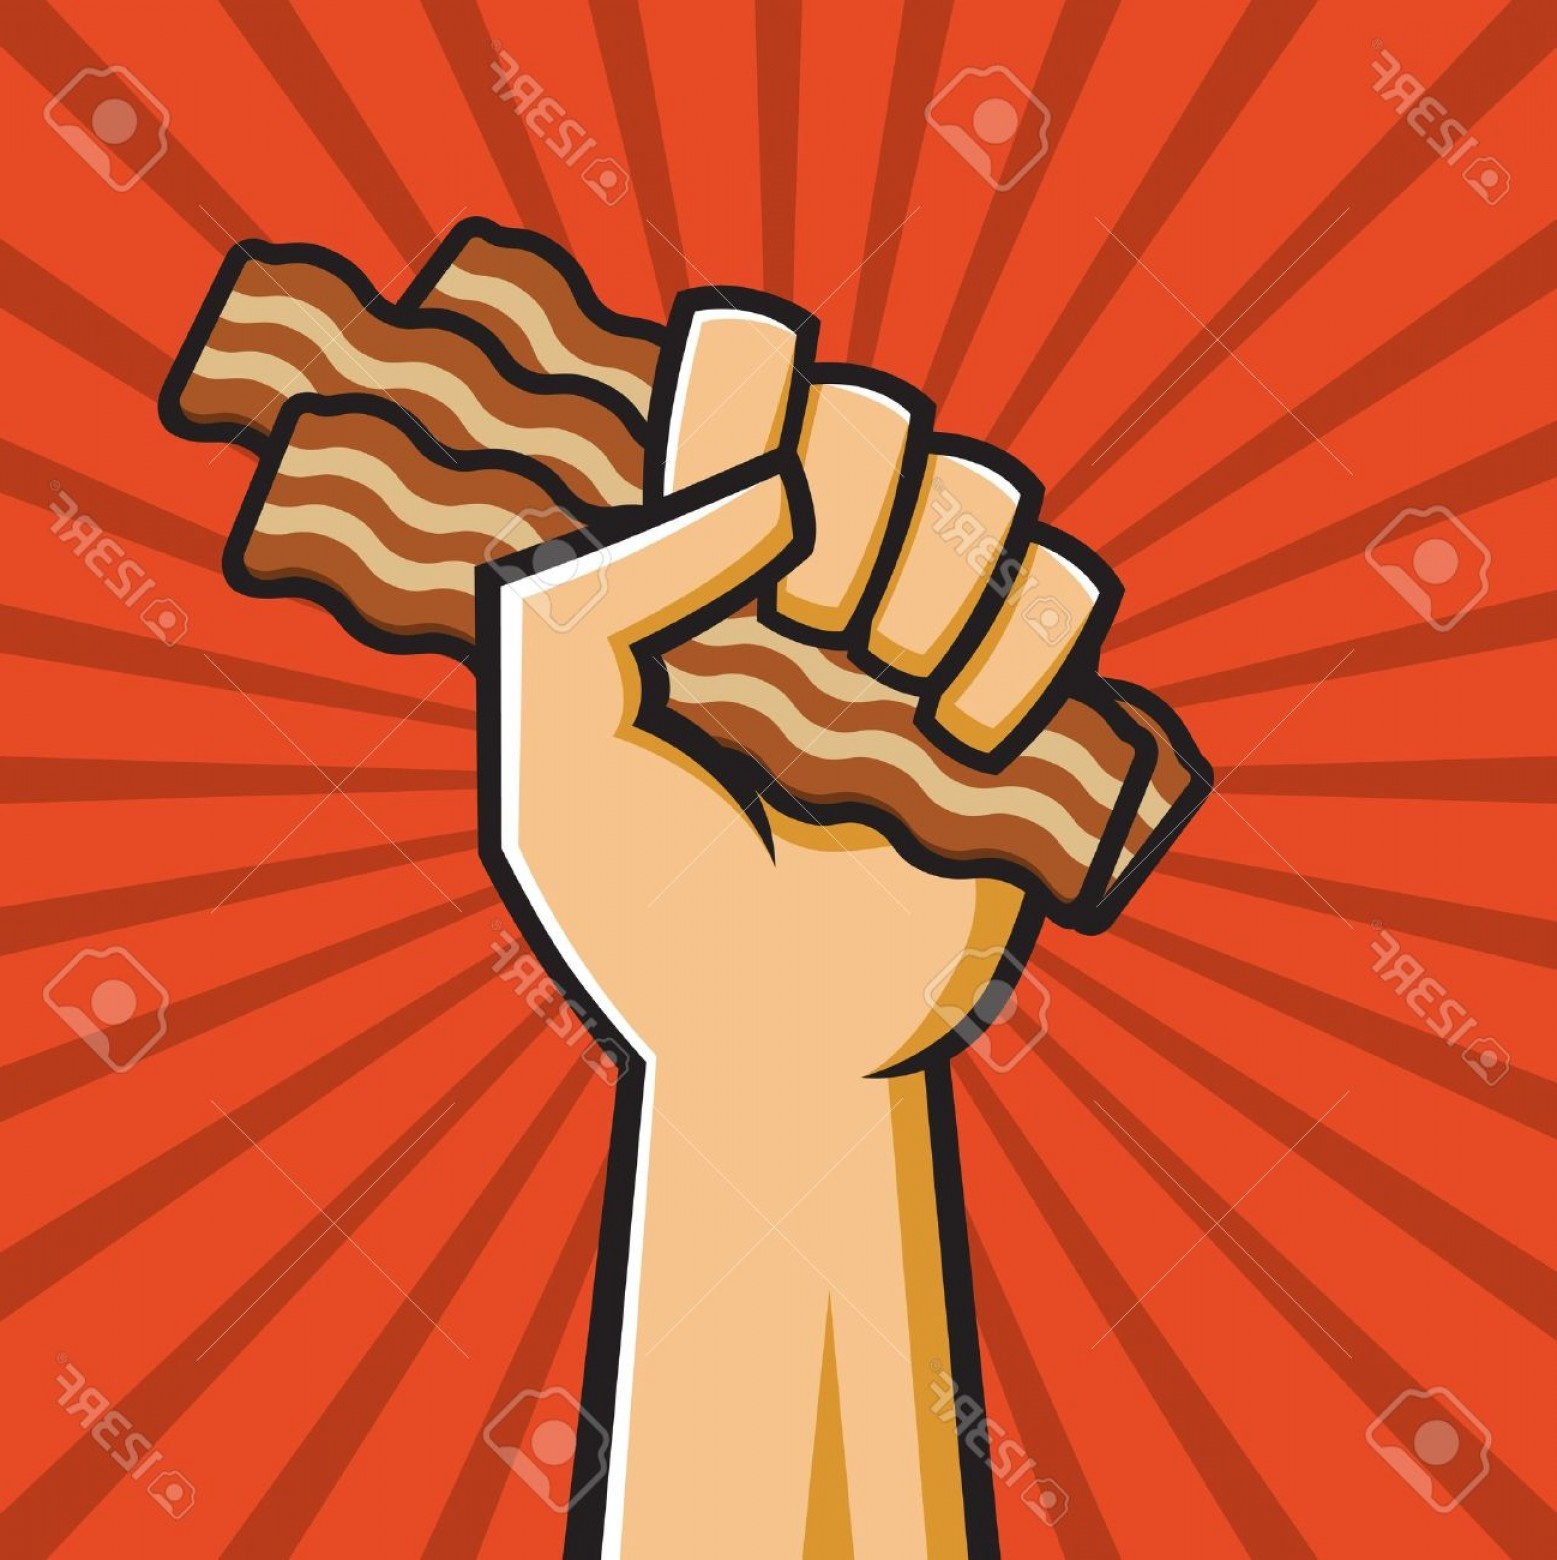 Propaganda Art Poster Vector: Photovector Illustration Of A Fist Holding Bacon In The Style Of Russian Constructivist Propaganda Poster